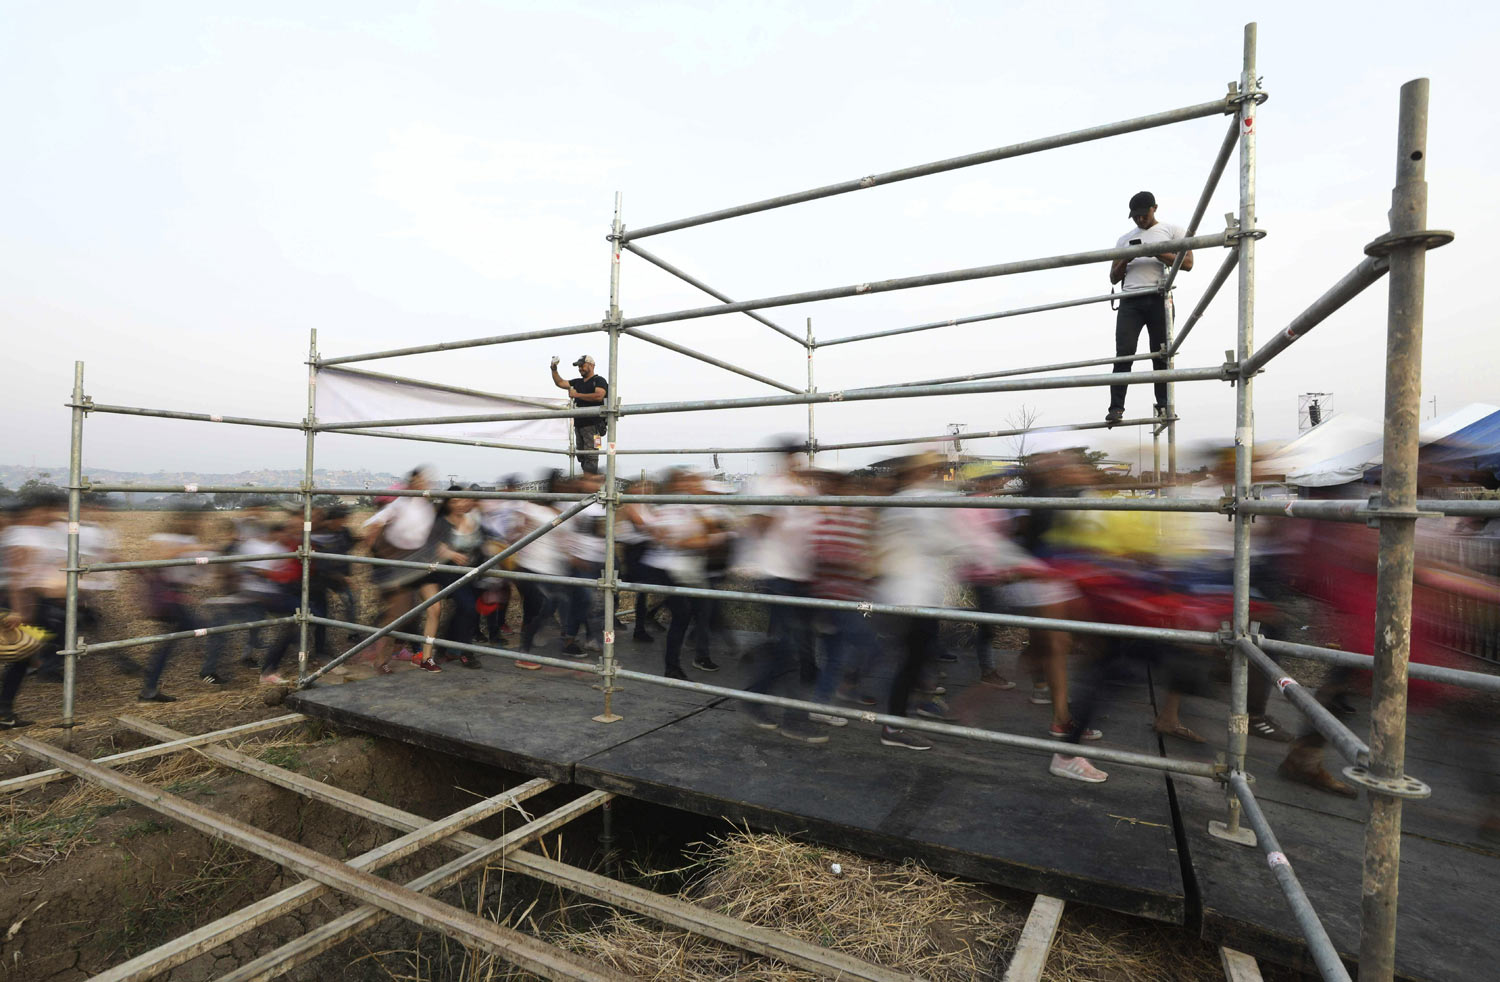 People stream through a gate before the Venezuela Aid Live concert on the Colombian side of Tienditas International Bridge on the outskirts of Cucuta, Colombia, on the border with Venezuela, Friday, Feb. 22, 2019. Venezuela's power struggle is set to convert into a battle of the bands Friday when musicians demanding Nicolas Maduro allow in humanitarian aid and those supporting the embattled leader's refusal sing in rival concerts being held at both sides of a border bridge where tons of donated food and medicine are being stored. (AP Photo/Fernando Vergara)